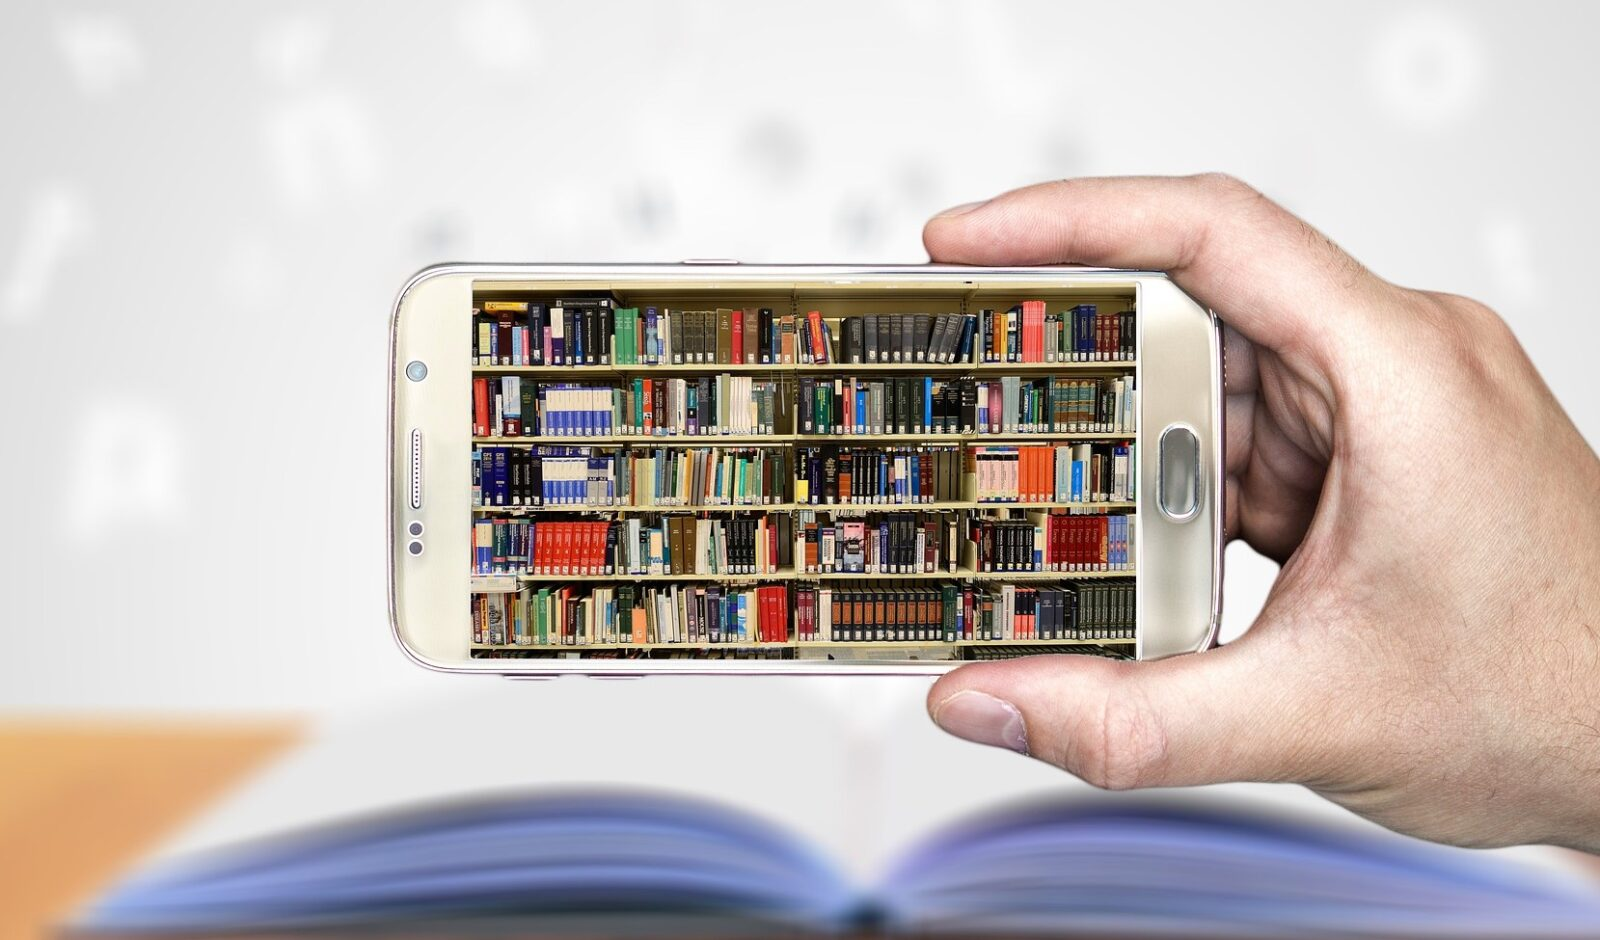 Hand holding phone with image of book shelves